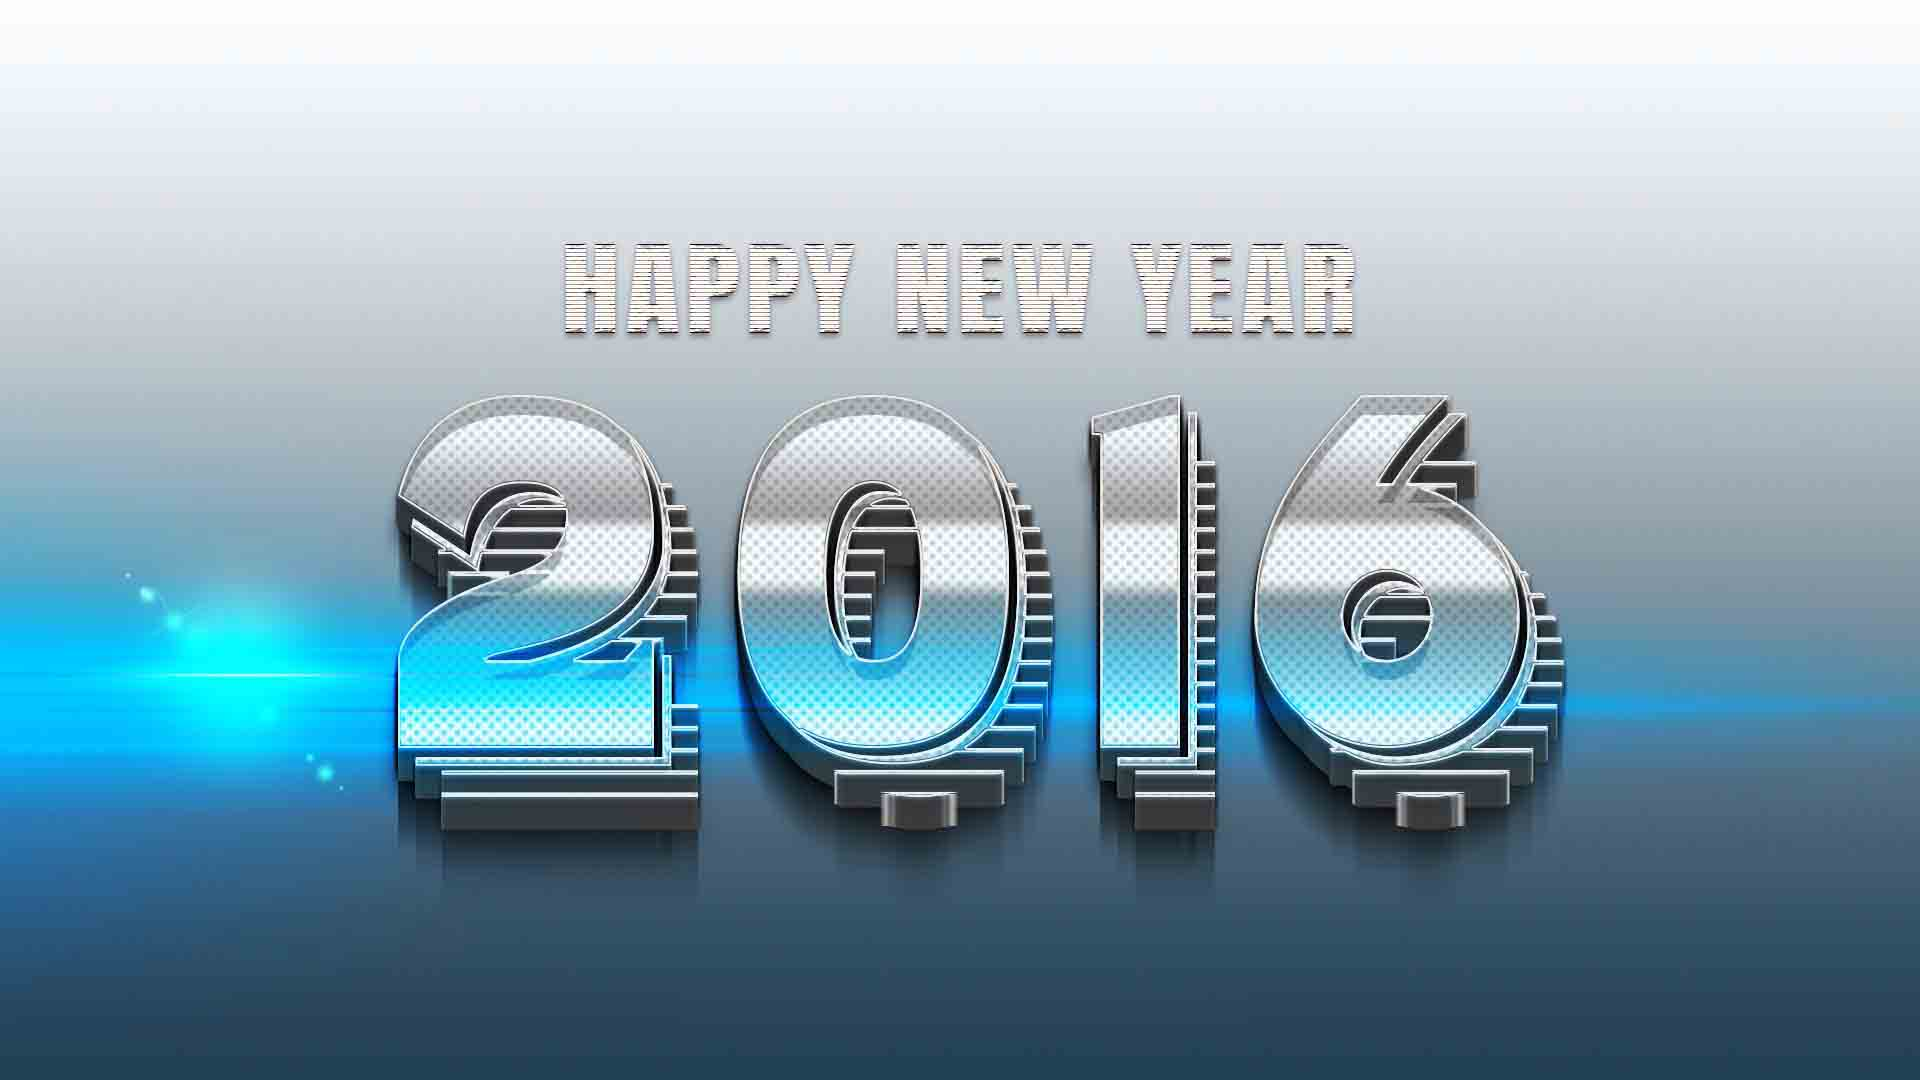 2016 3D text wallpaper to say happy new year dear